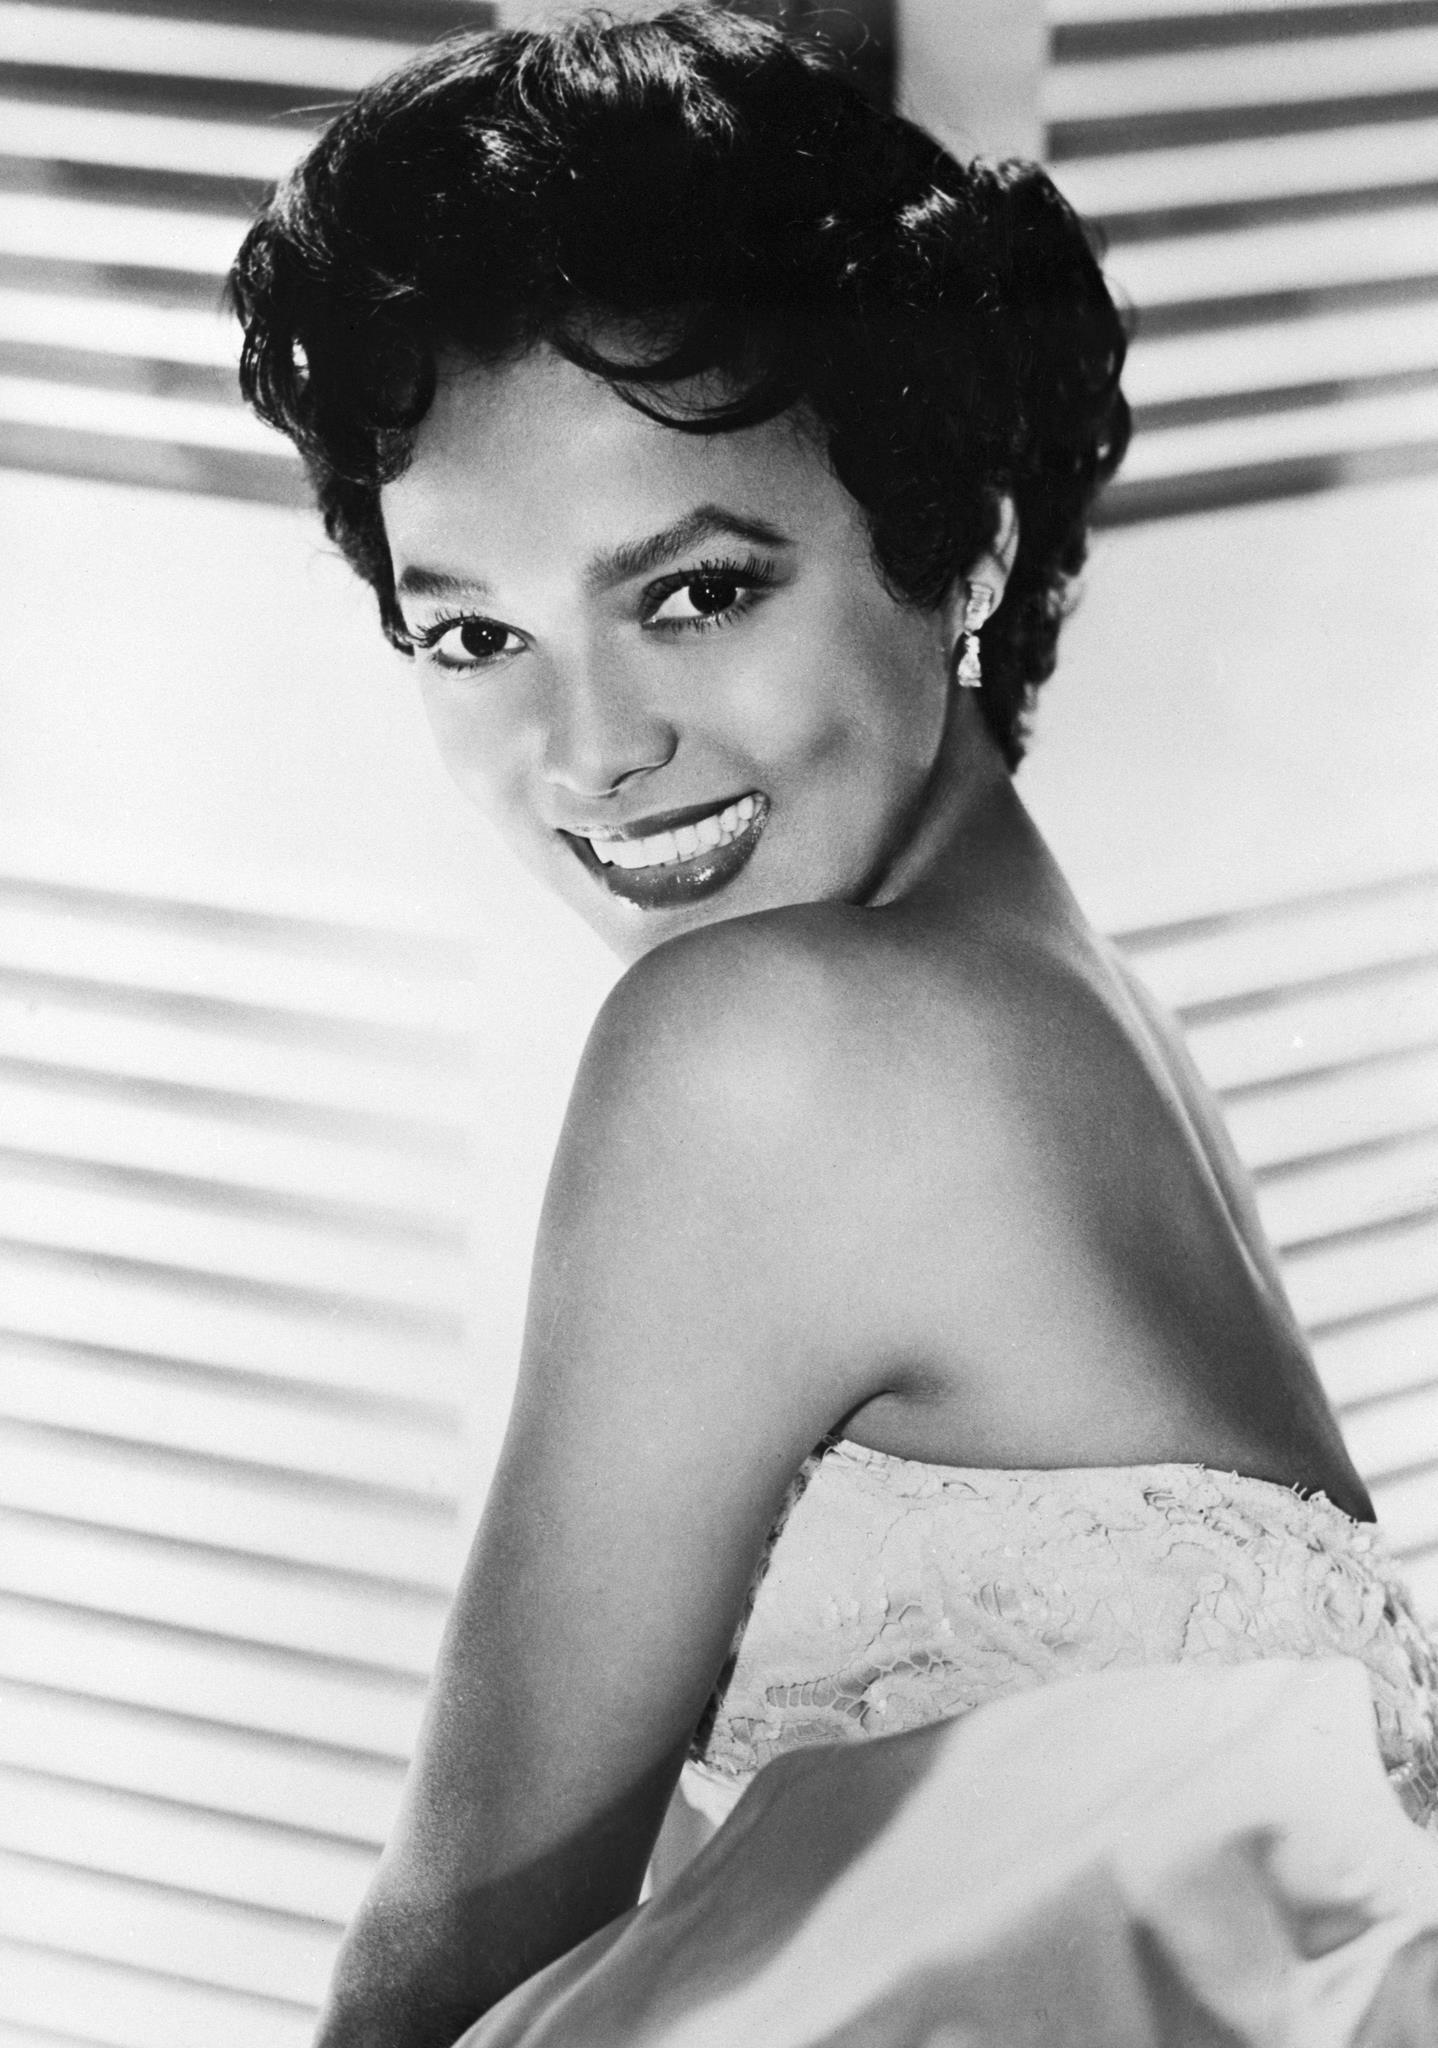 "Dorothy Dandridge was an American film and theatre actress, singer, and dancer from Ohio. Born on November 9th, 1922, she was the daughter of African American entertainer, Ruby Dandridge. Dorothy and her older sister, Vivian, were known as the ""The Wonder Children."" The Wonder Children sang in black churches around the country during the great depression. Ruby decided to move her family to Hollywood during the depression, believing that they may find more work, especially in the entertainment industry. Dorothy appeared in her first film in 1937, called A Day at the Races. In 1954 she starred in the all black production of Carmen Jones. The film earned her an Academy Award nomination for best actress; however, she did not win.    With the nomination for Carmen Jones, Dorothy became the first black woman to be nominated for an Academy Award for best actress in a leading role. A black actress would not win an Academy Award for best actress until 48 years later when Halle Berry, who played the role of Dorothy in a biopic film in 1999 about her life, would win for the film Monster's Ball. Berry thanked Dorothy in her acceptance speech for being a trailblazer and paving the way for her career. Dorothy was also the first African American woman to grace the cover of Life Magazine and she was one of the first African American actresses to have a successful Hollywood career. In honor of her accomplishments, she has a star on the Hollywood walk of fame."